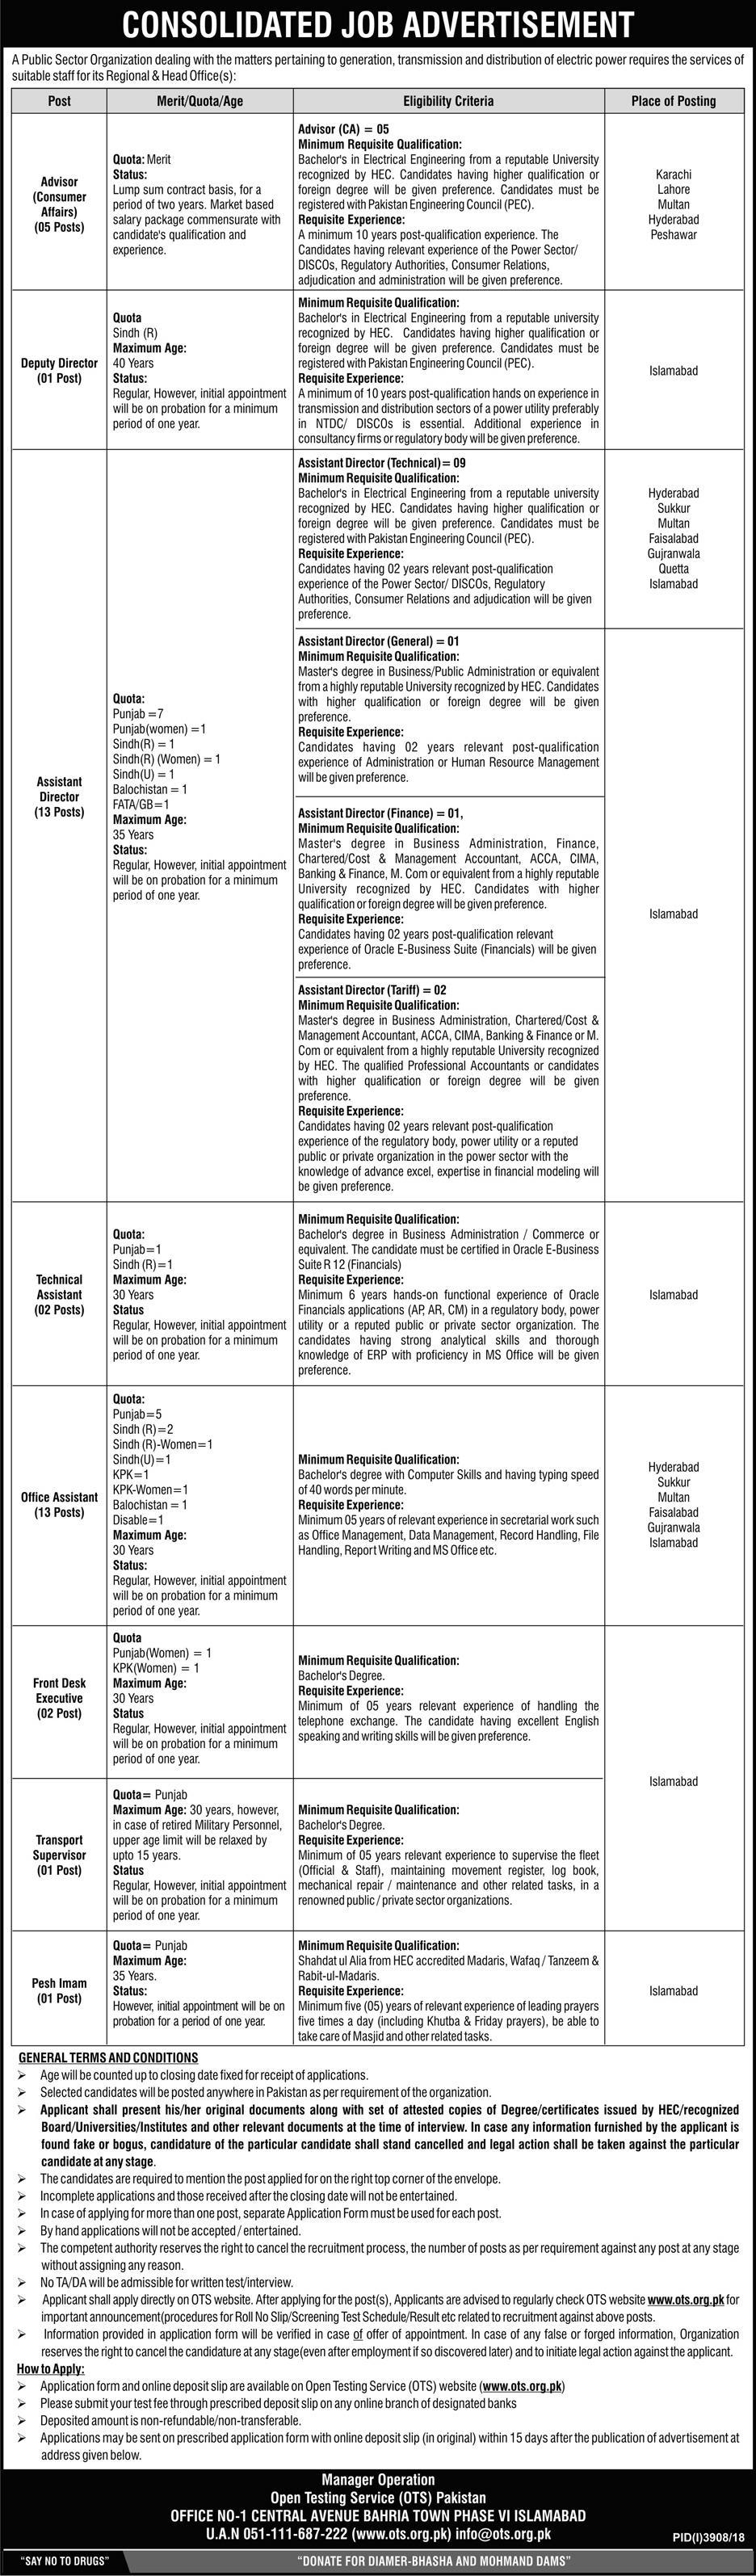 Public Sector Organization Jobs 2019 Apply through Open Testing Service OTS